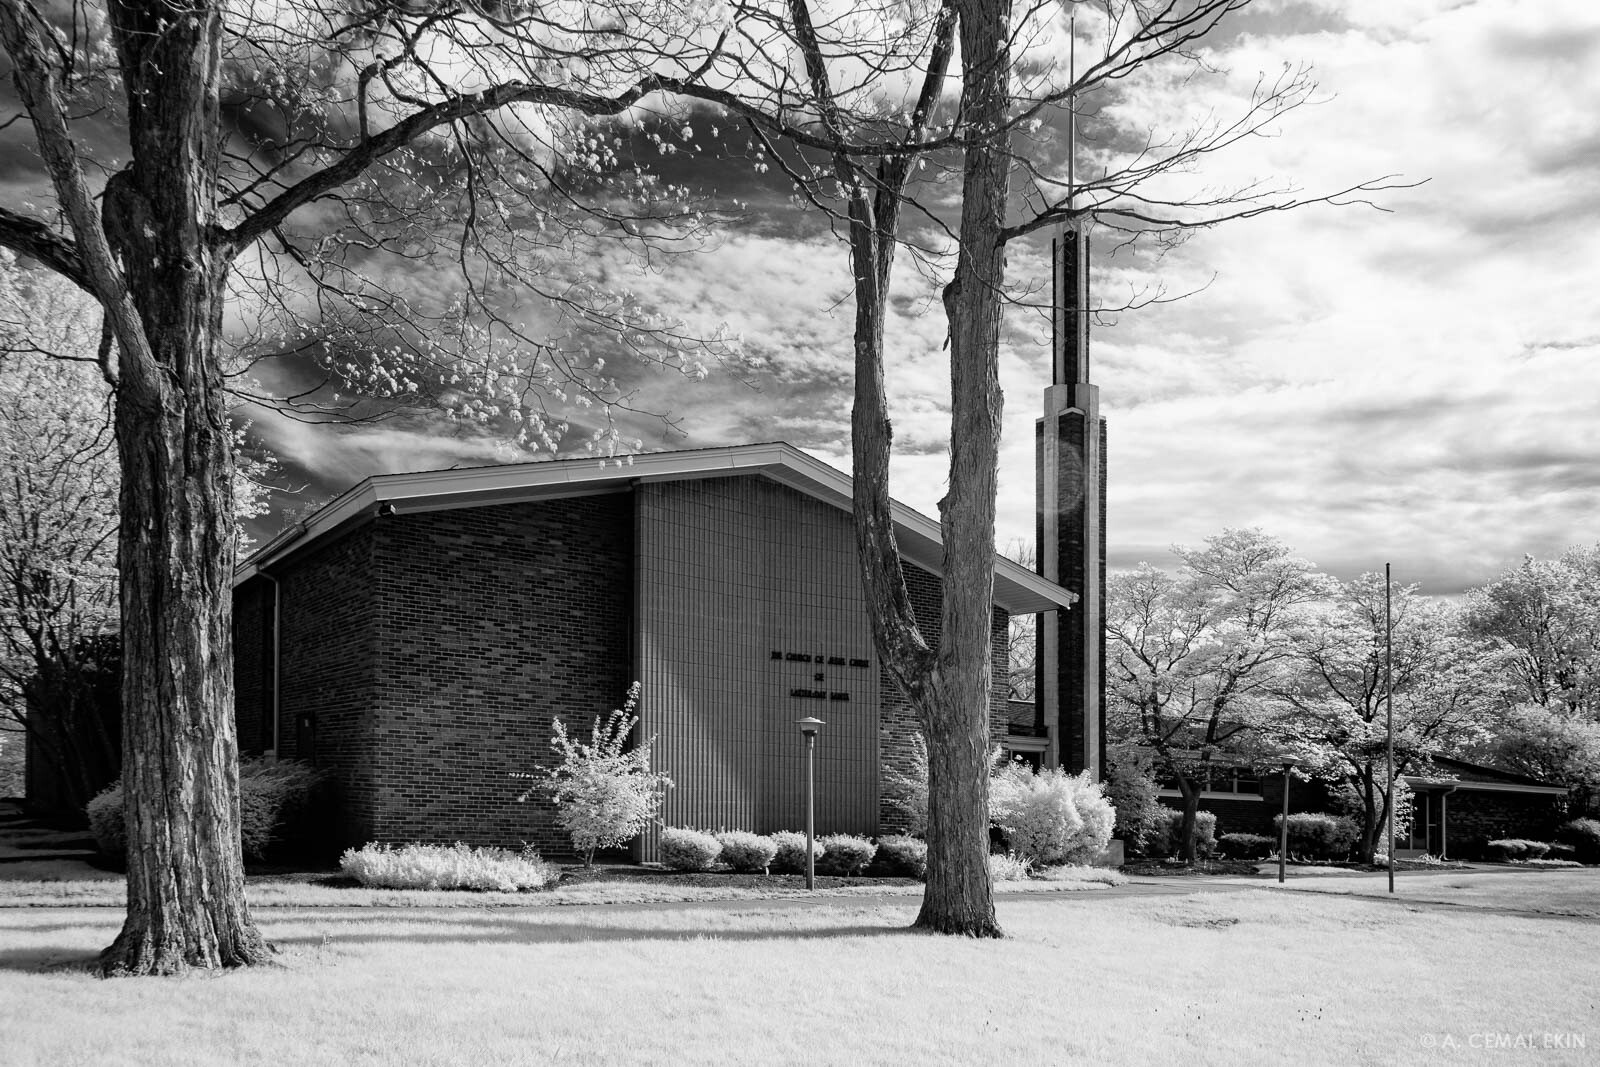 The Church of the Latter-day Saints, infrared